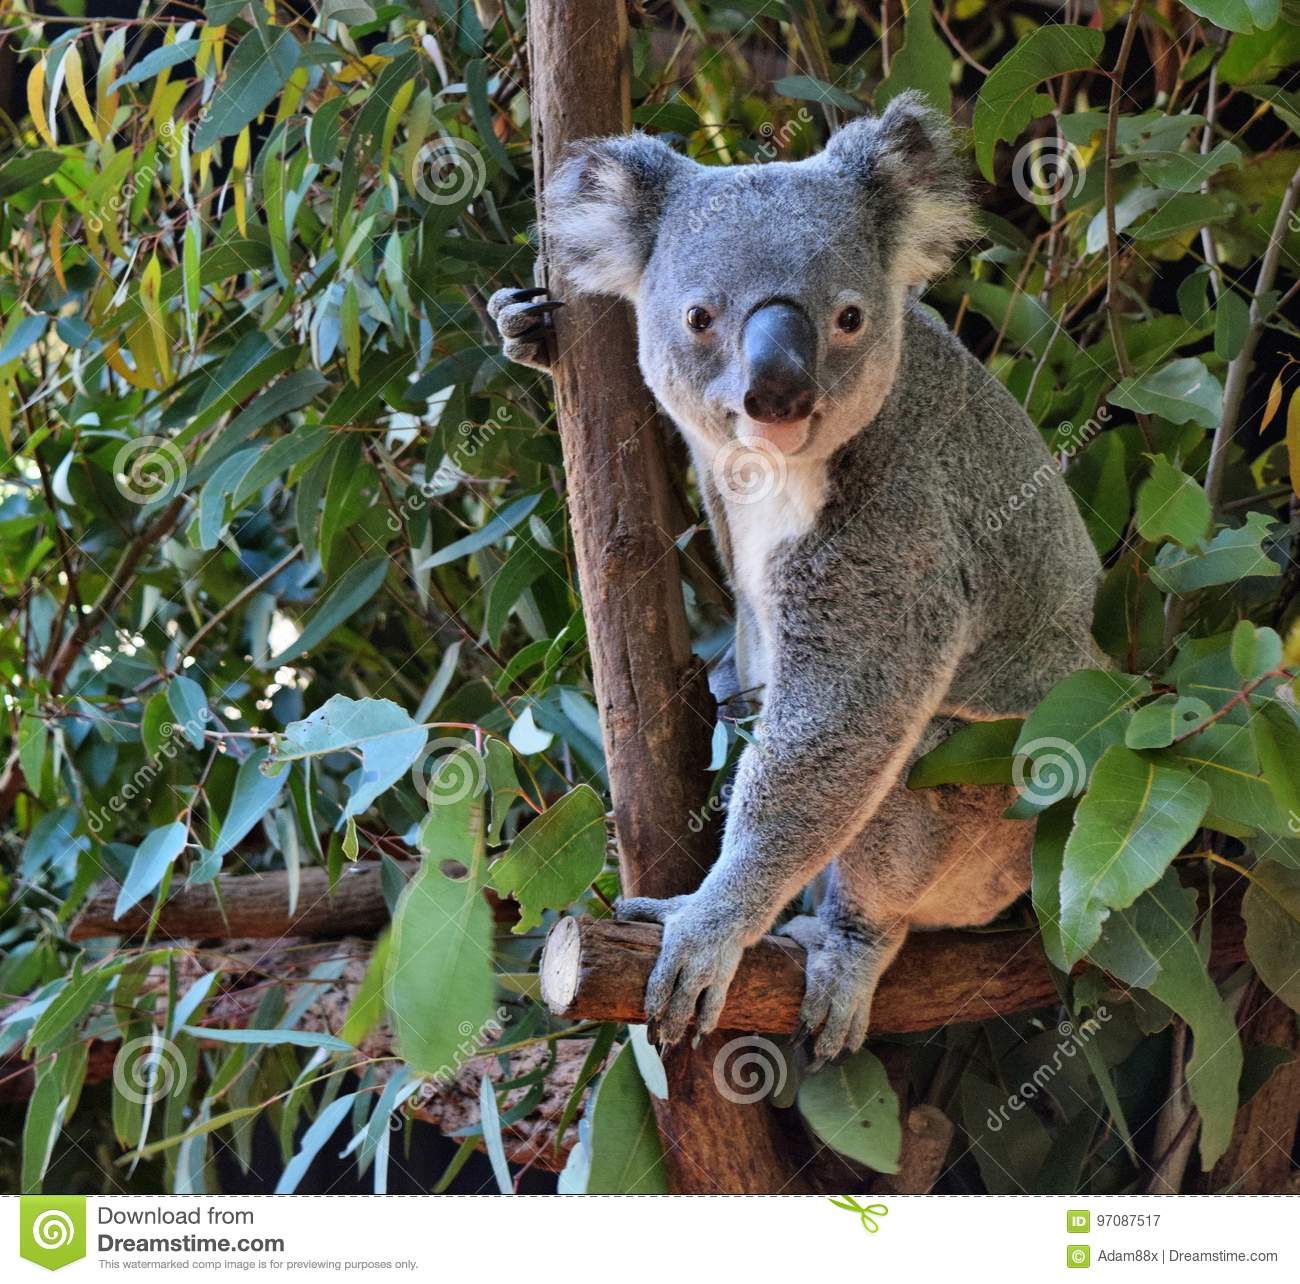 koala mignon regardant sur un eucalyptus de branche d 39 arbre image stock image du curieux. Black Bedroom Furniture Sets. Home Design Ideas